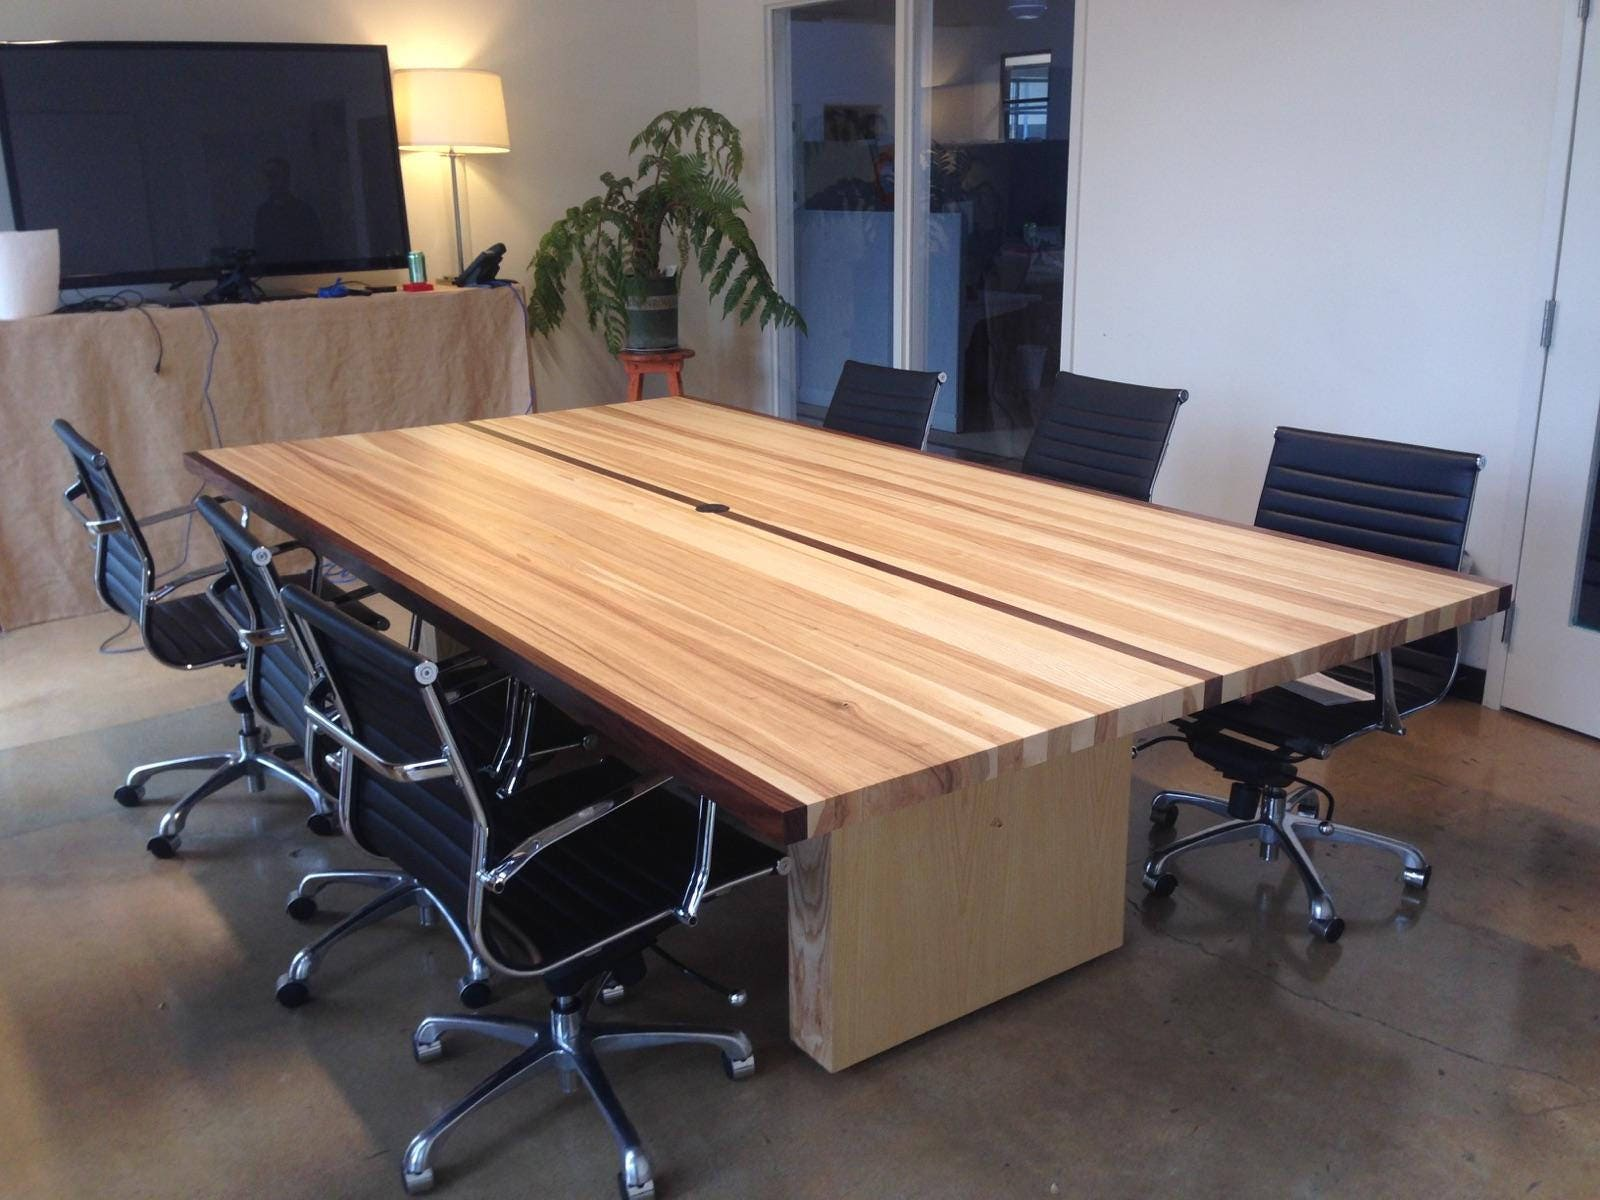 Custom Wood Ping Pong Table Table Tennis Table Conference